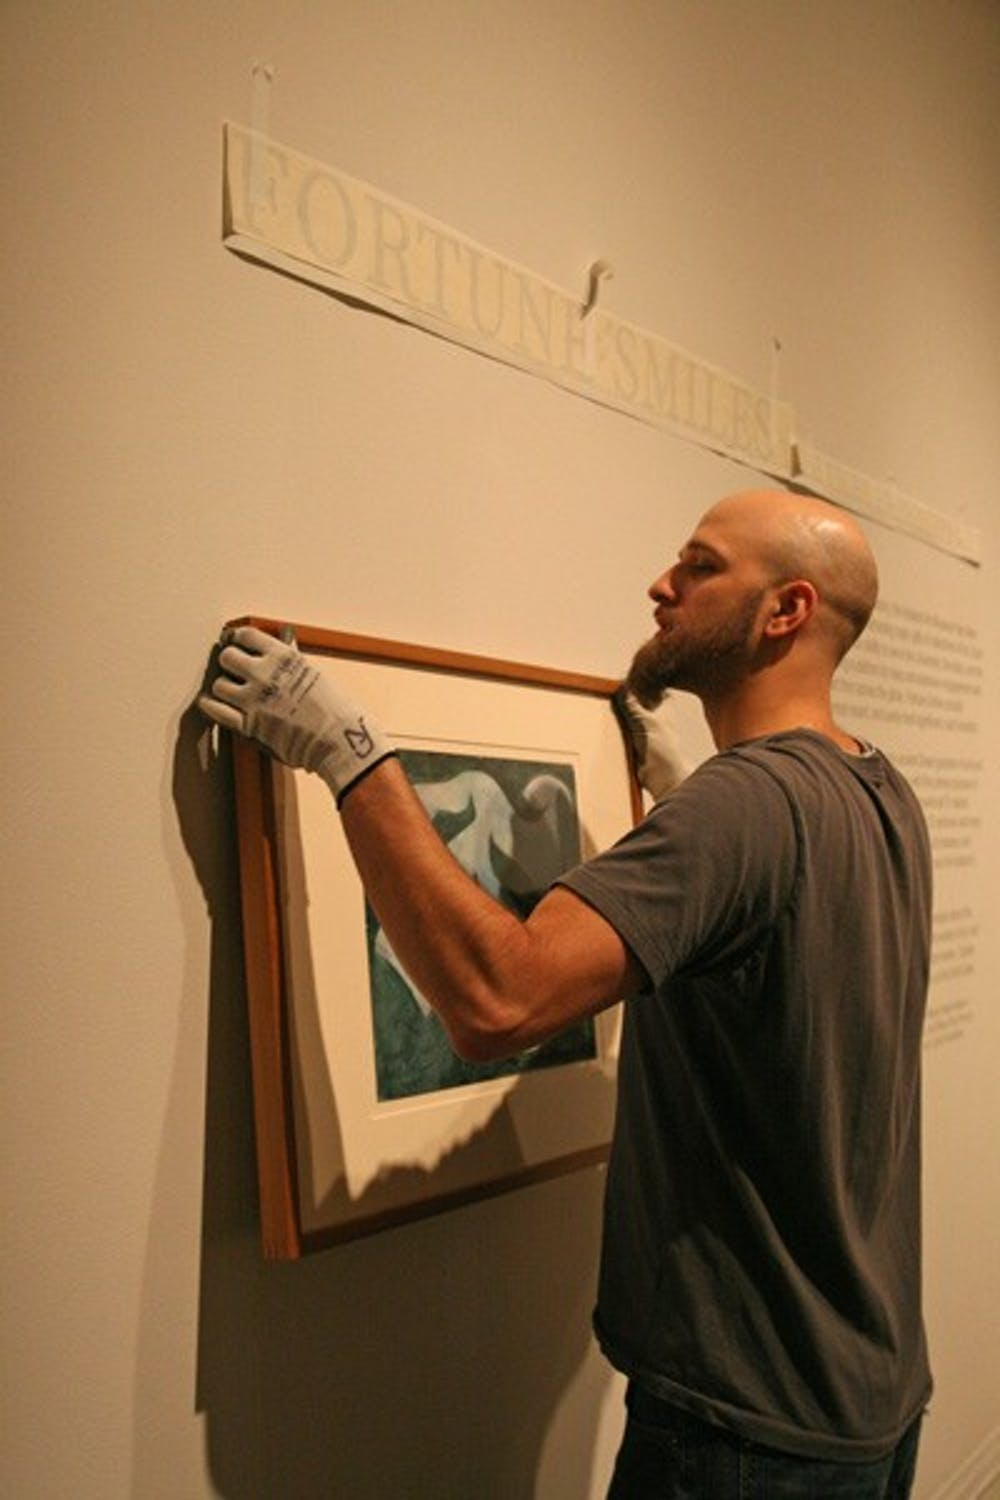 Ackland Art Museum preparator Andrew Nagy hangs a painting for a new exhibit. DTH/Becca Brenner